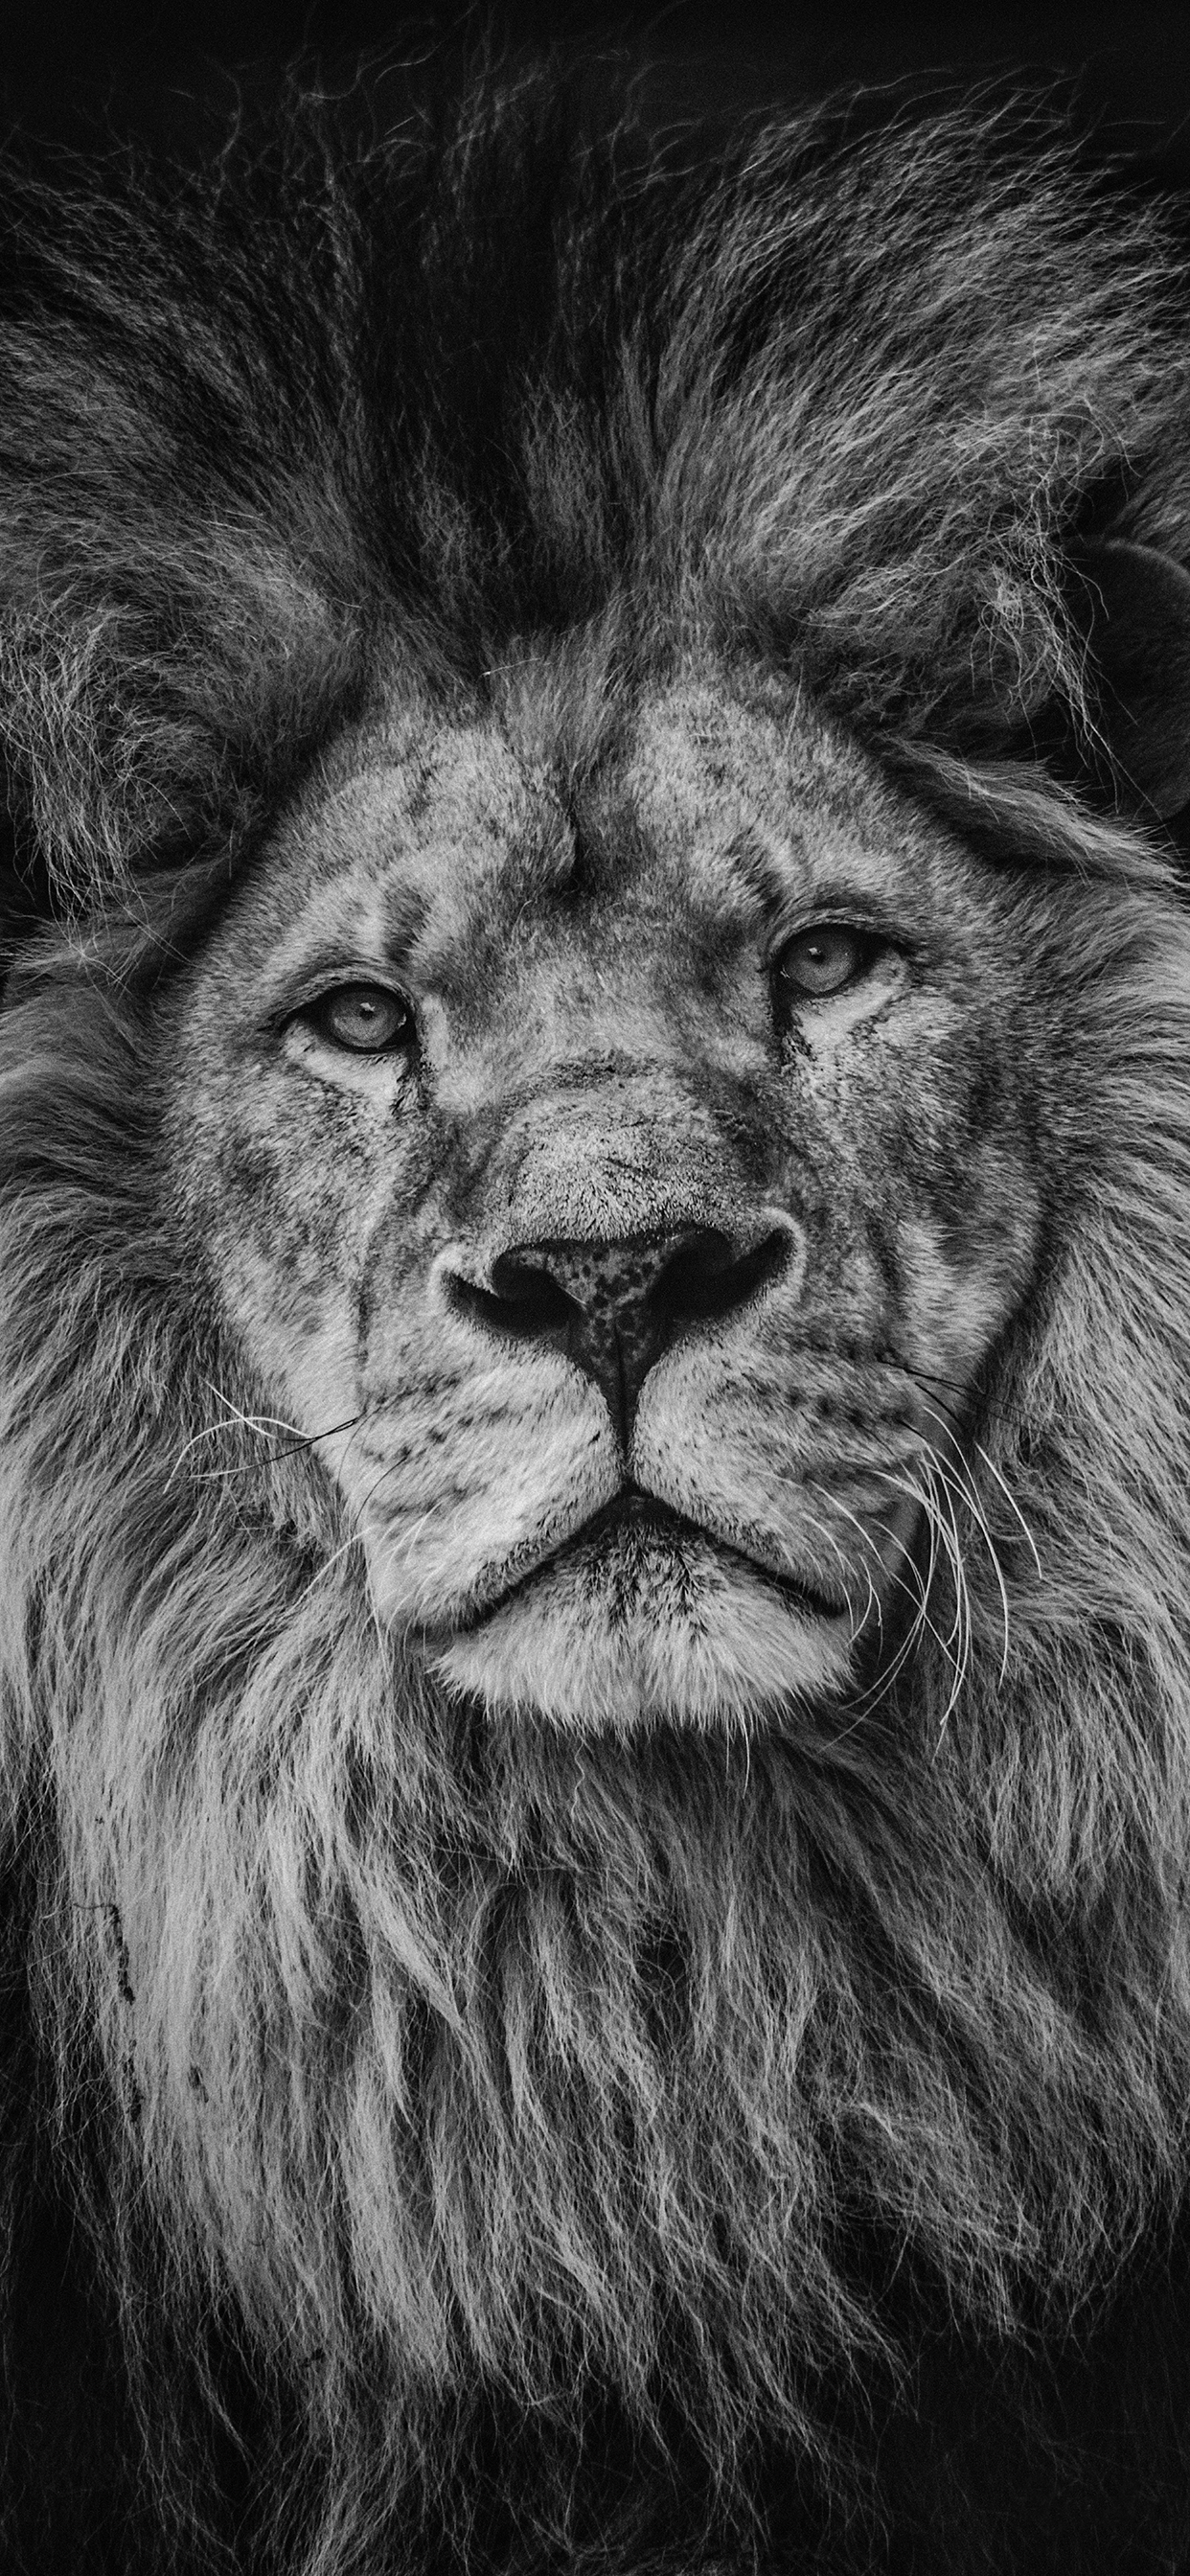 iPhone wallpaper lion black white Fonds d'écran iPhone du 09/07/2019